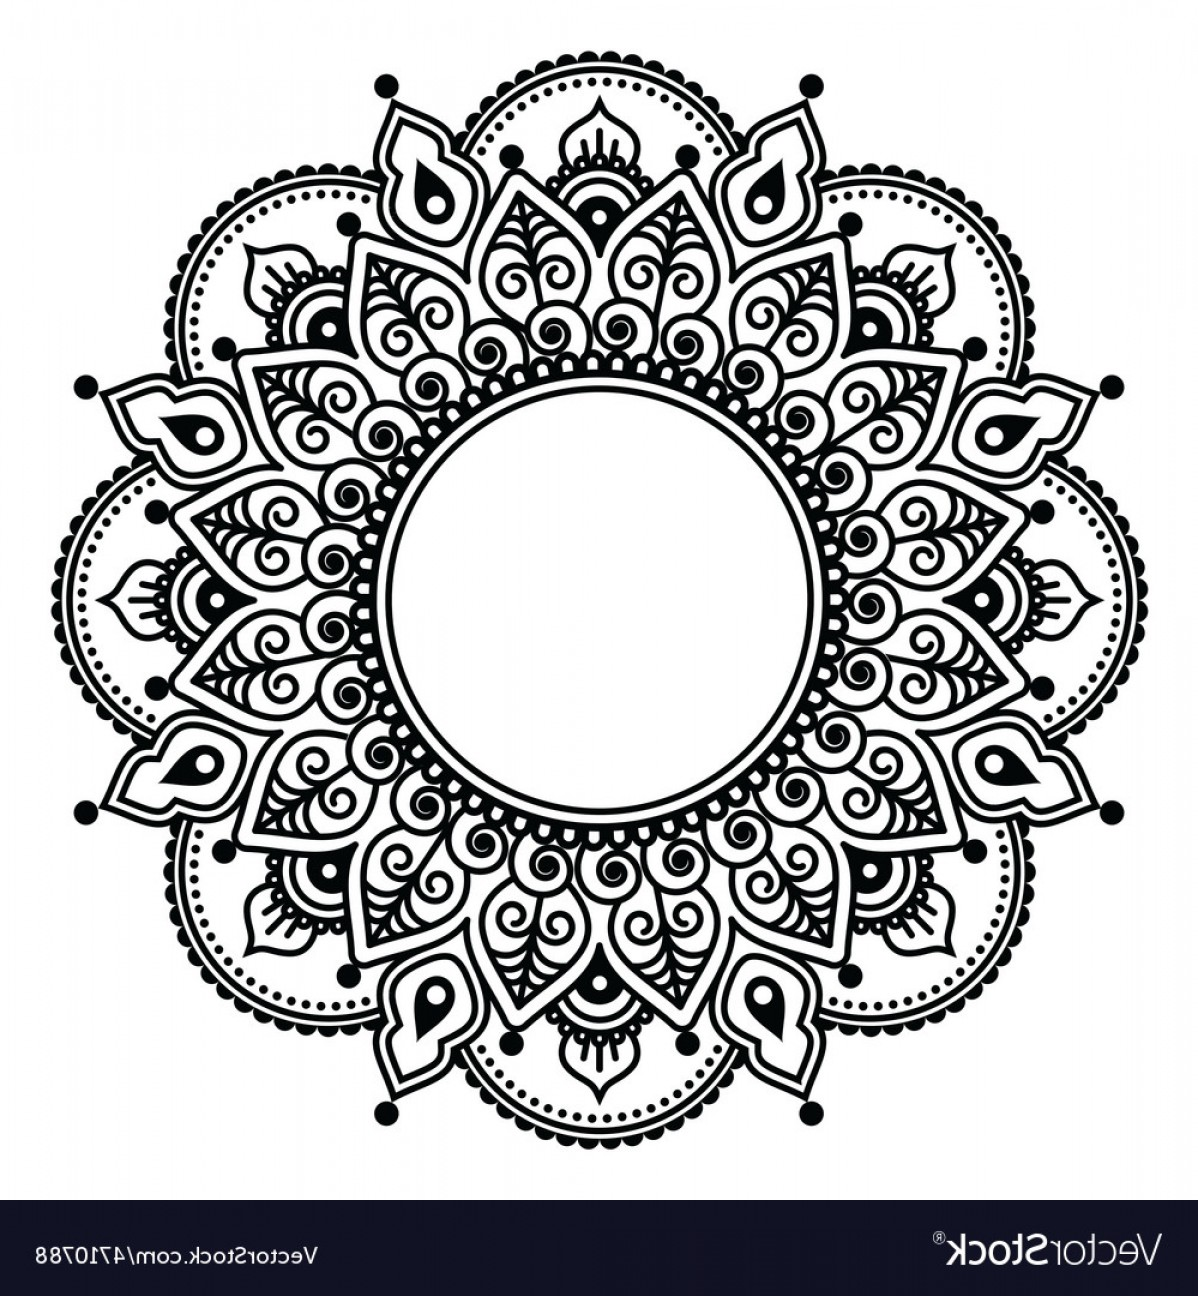 Mehndi Lace Indian Henna Tattoo Round Design Vector.